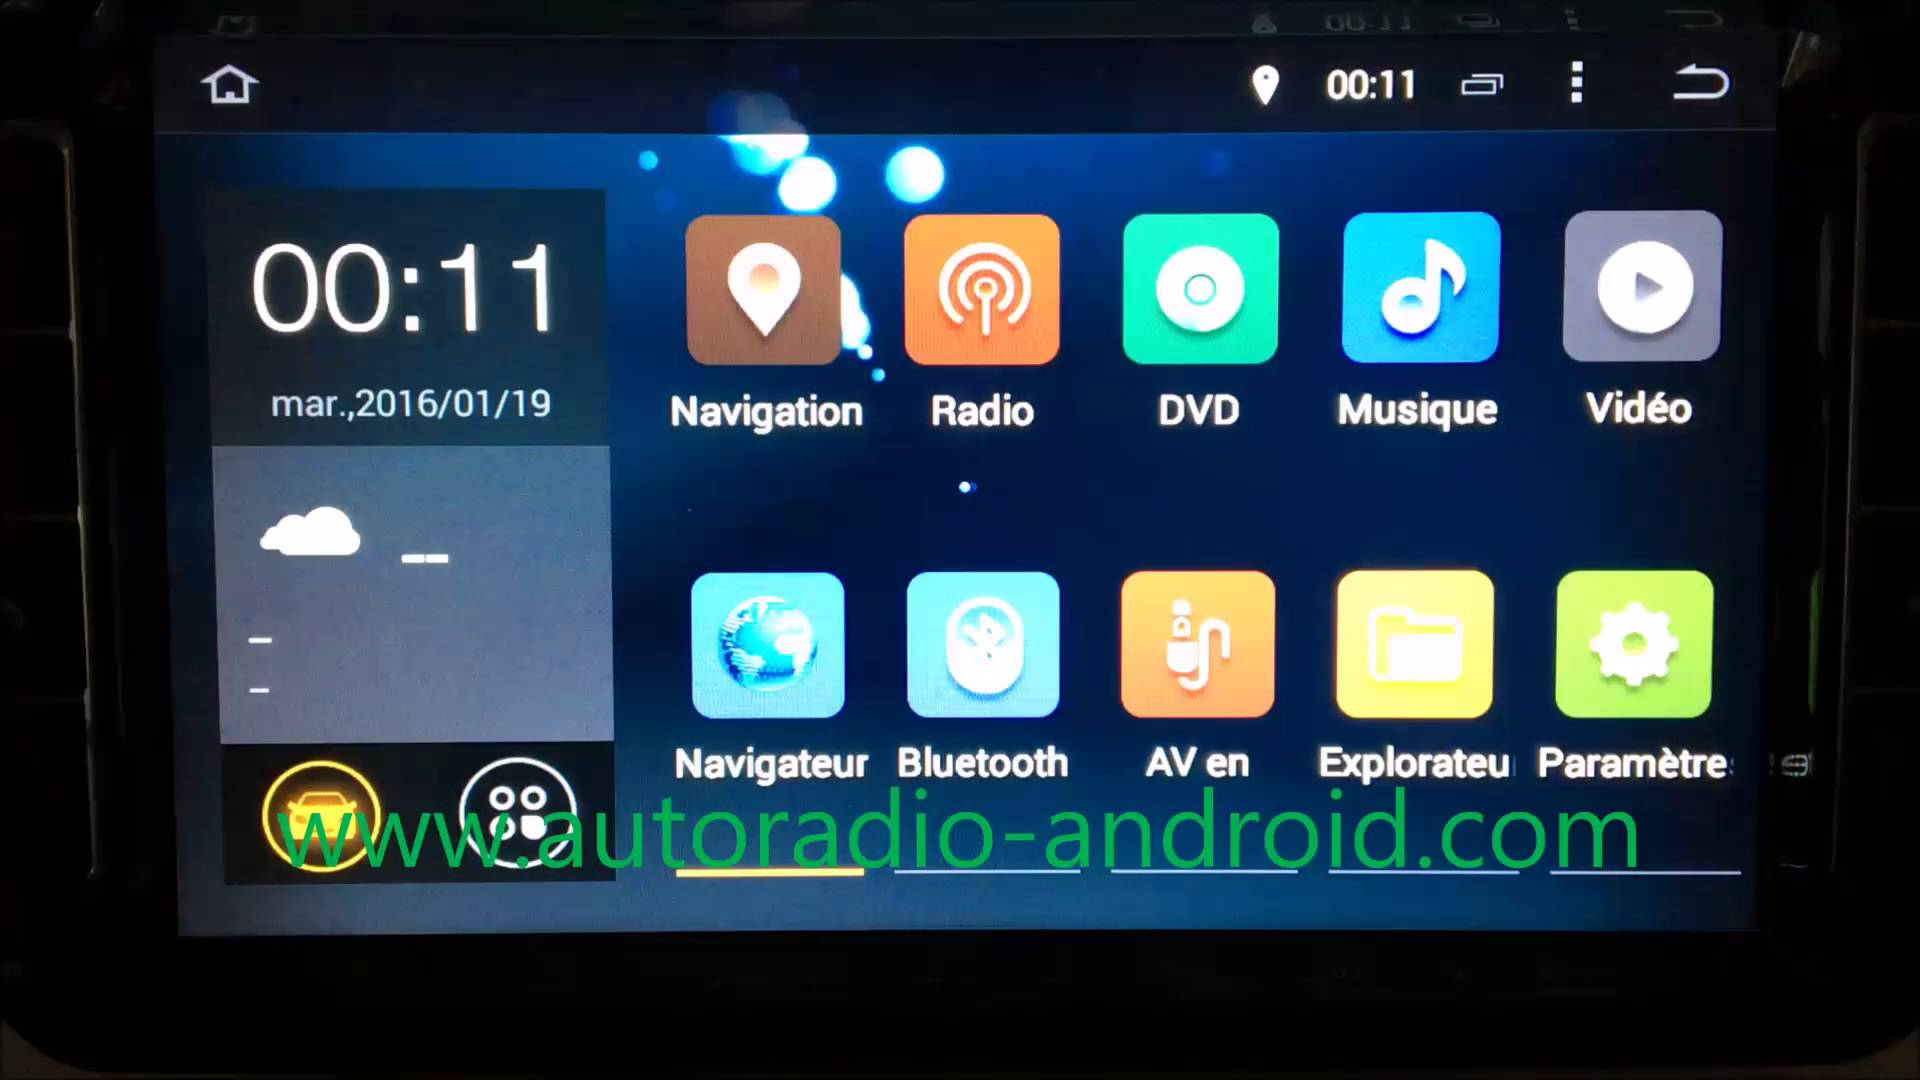 android 4.4.2 carte sd